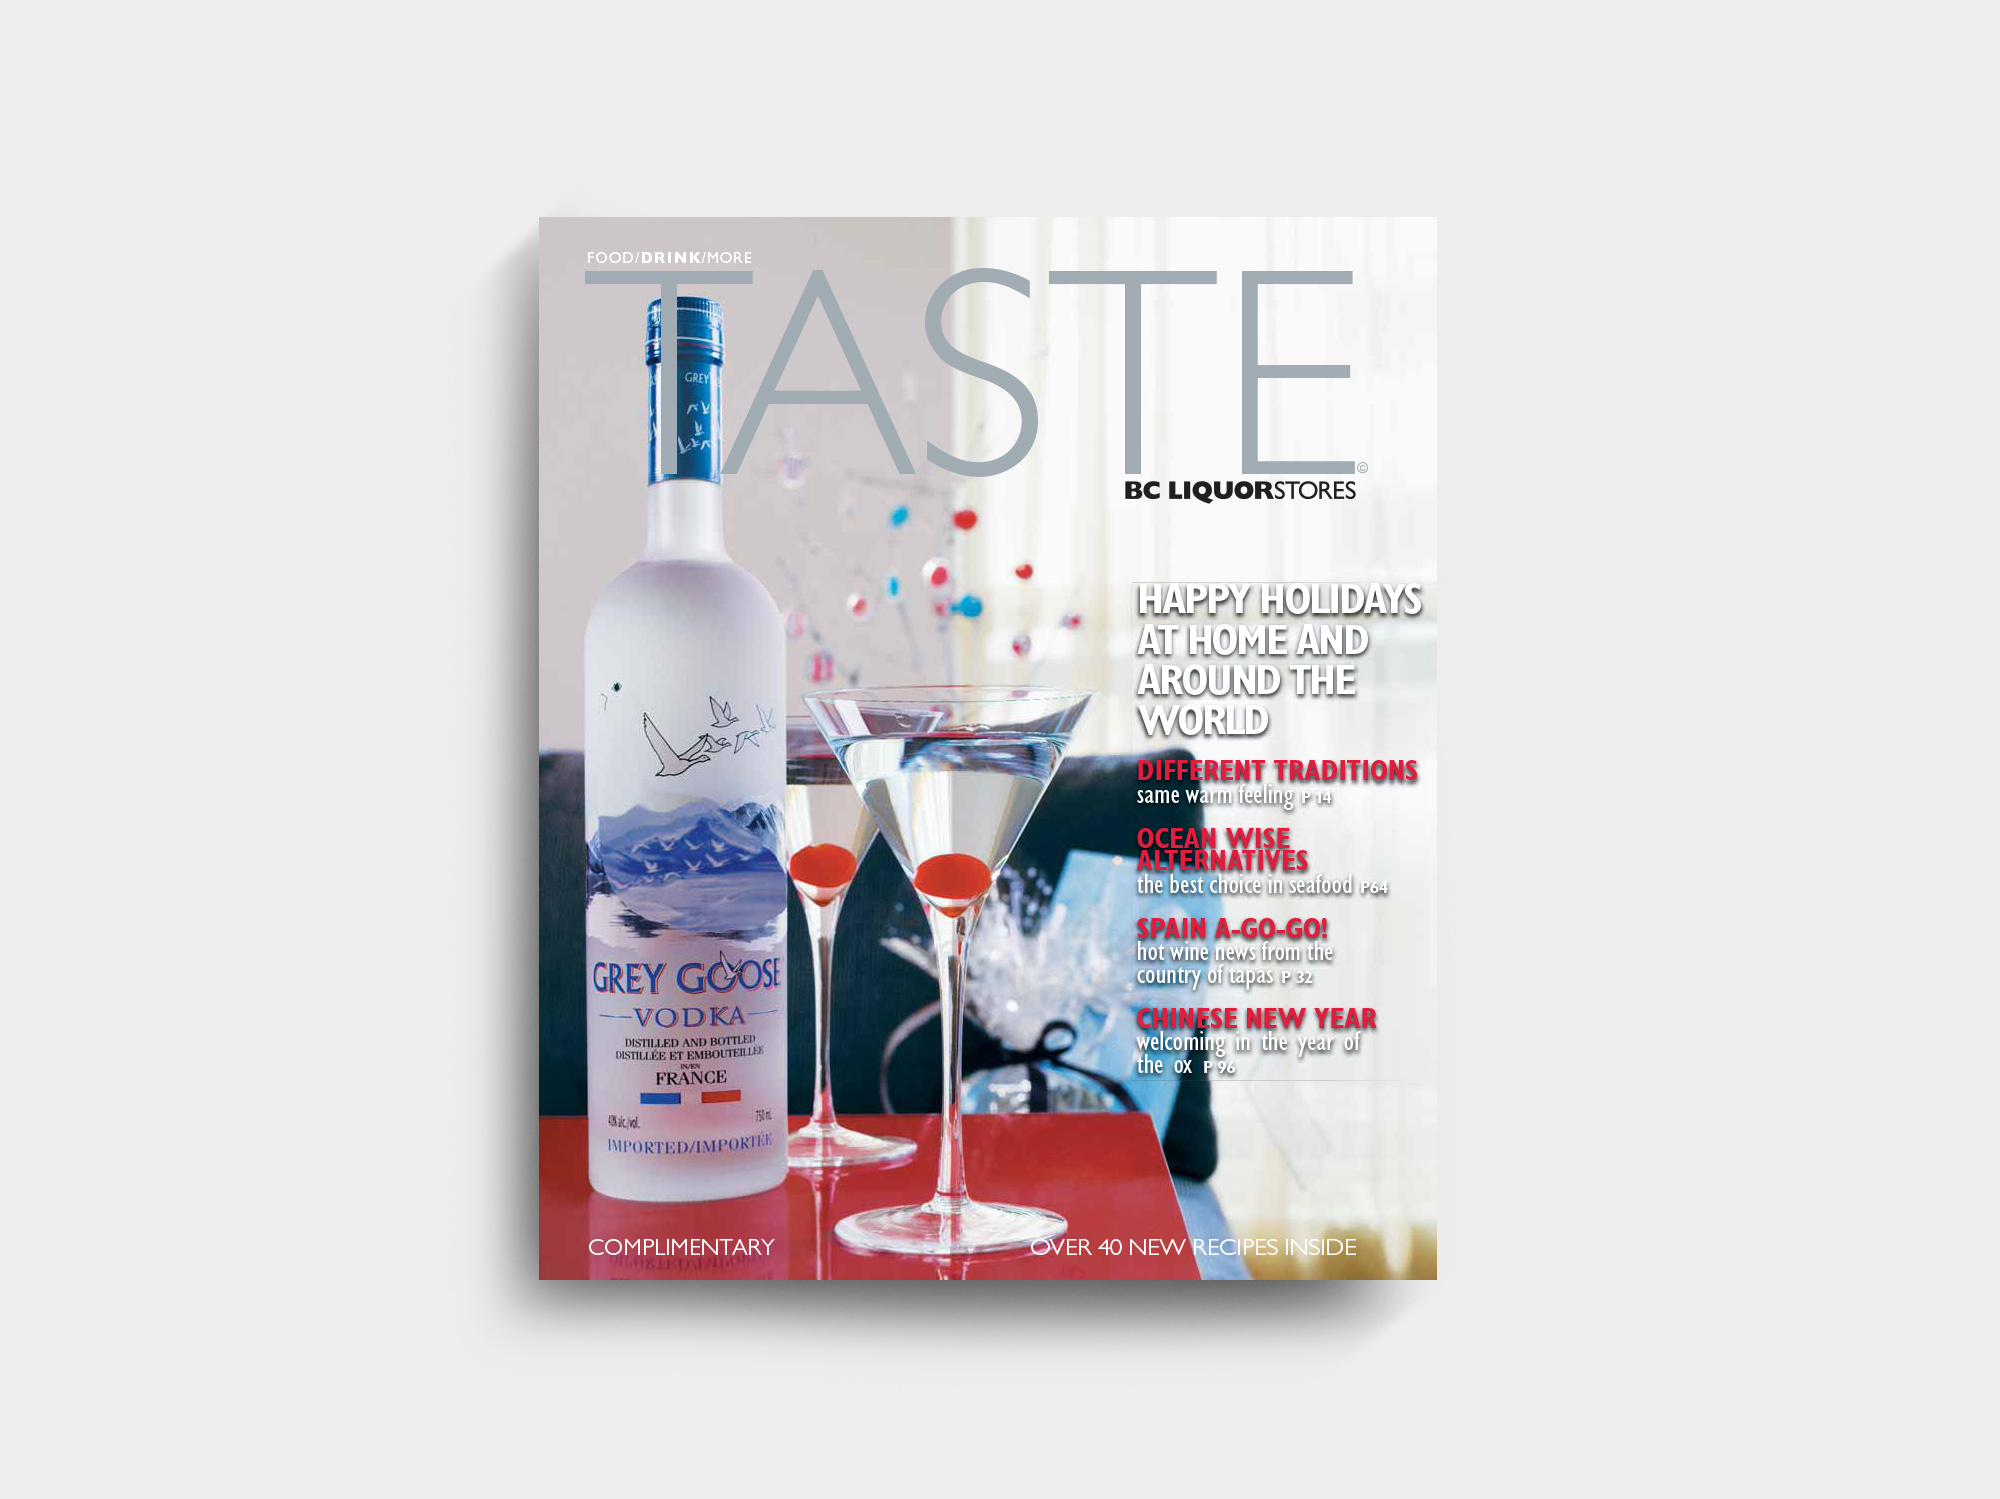 Taste_Magazine_Cover_Vodka.jpg